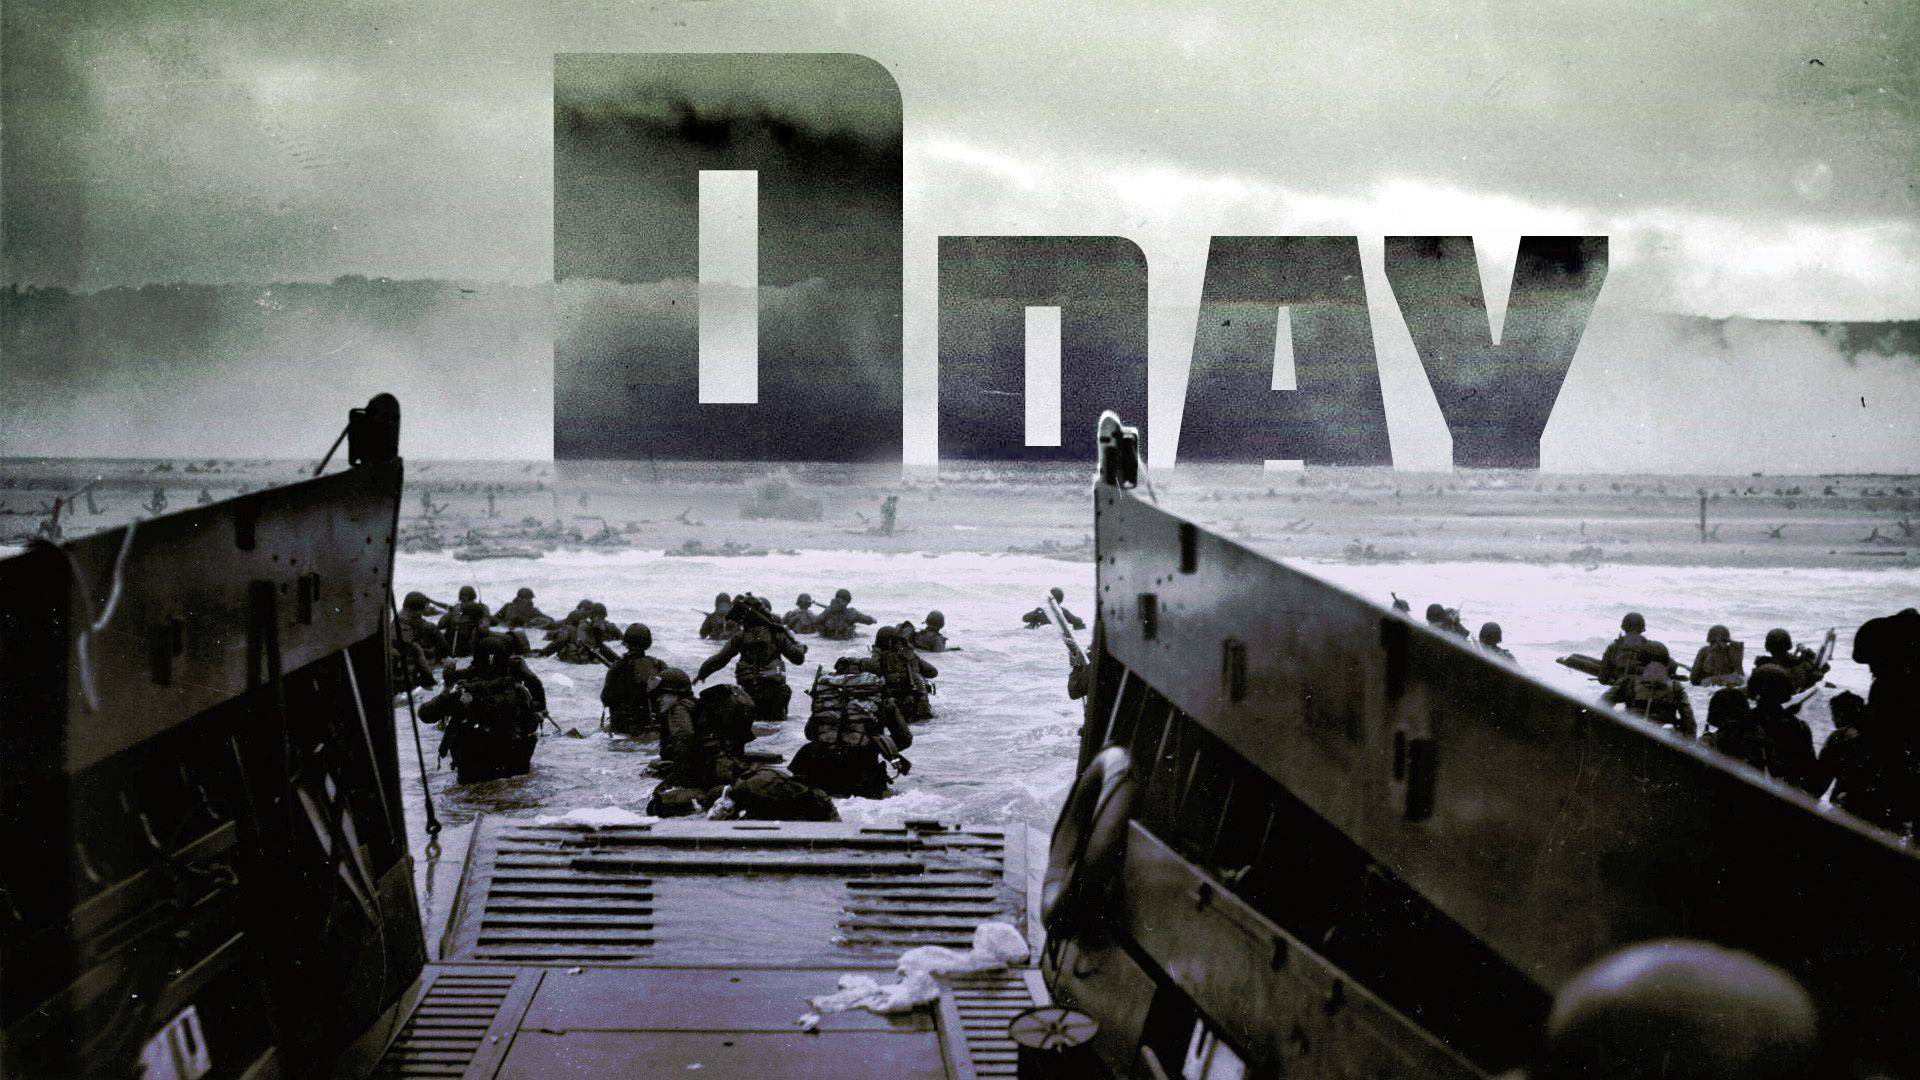 WWII D-Day Soldiers military battle wallpaper | | 197373 |  WallpaperUP